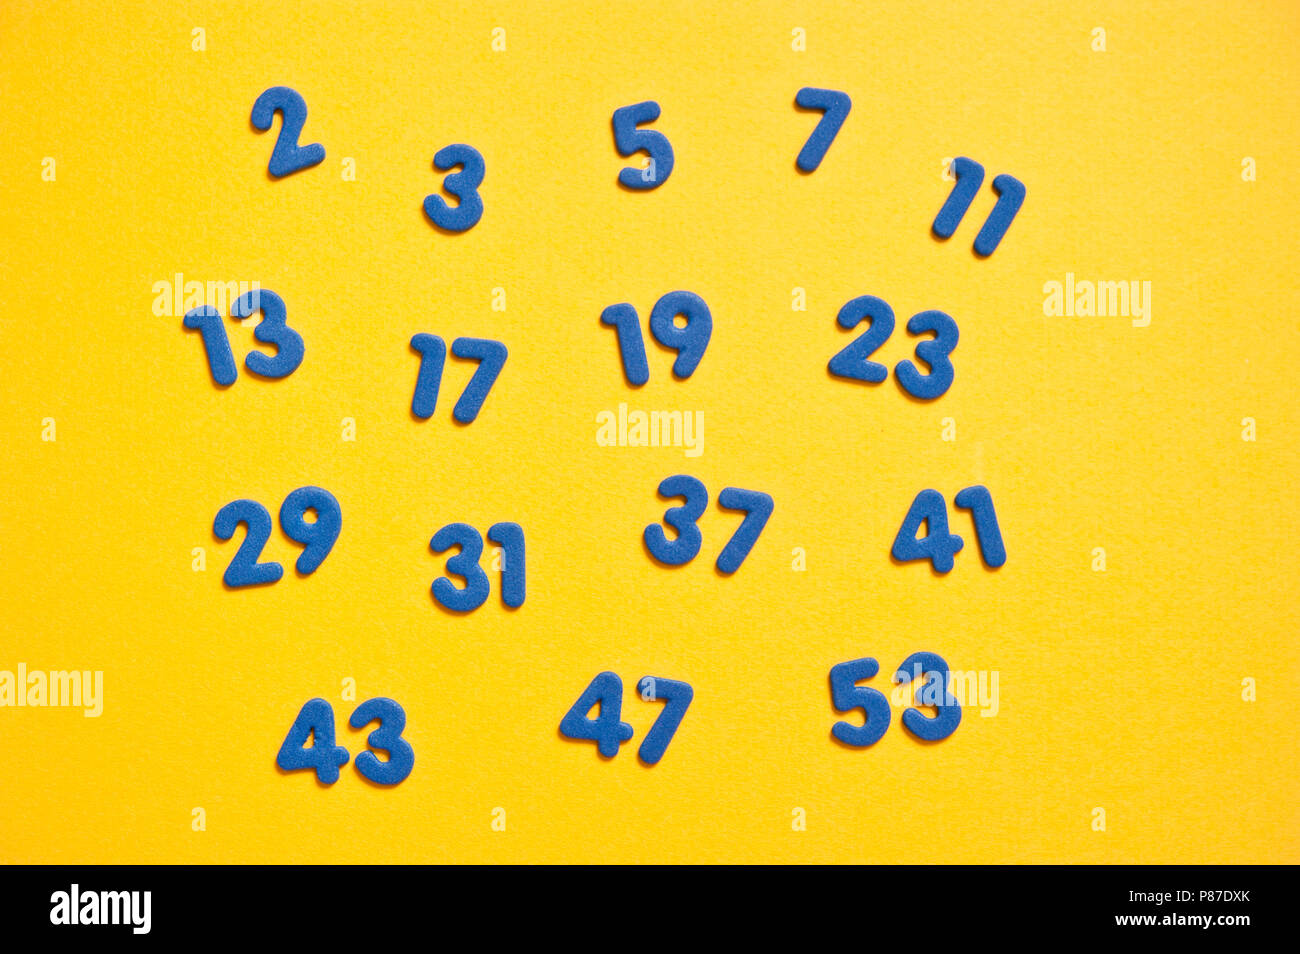 first sixteen prime numbers, blue on yellow - Stock Image